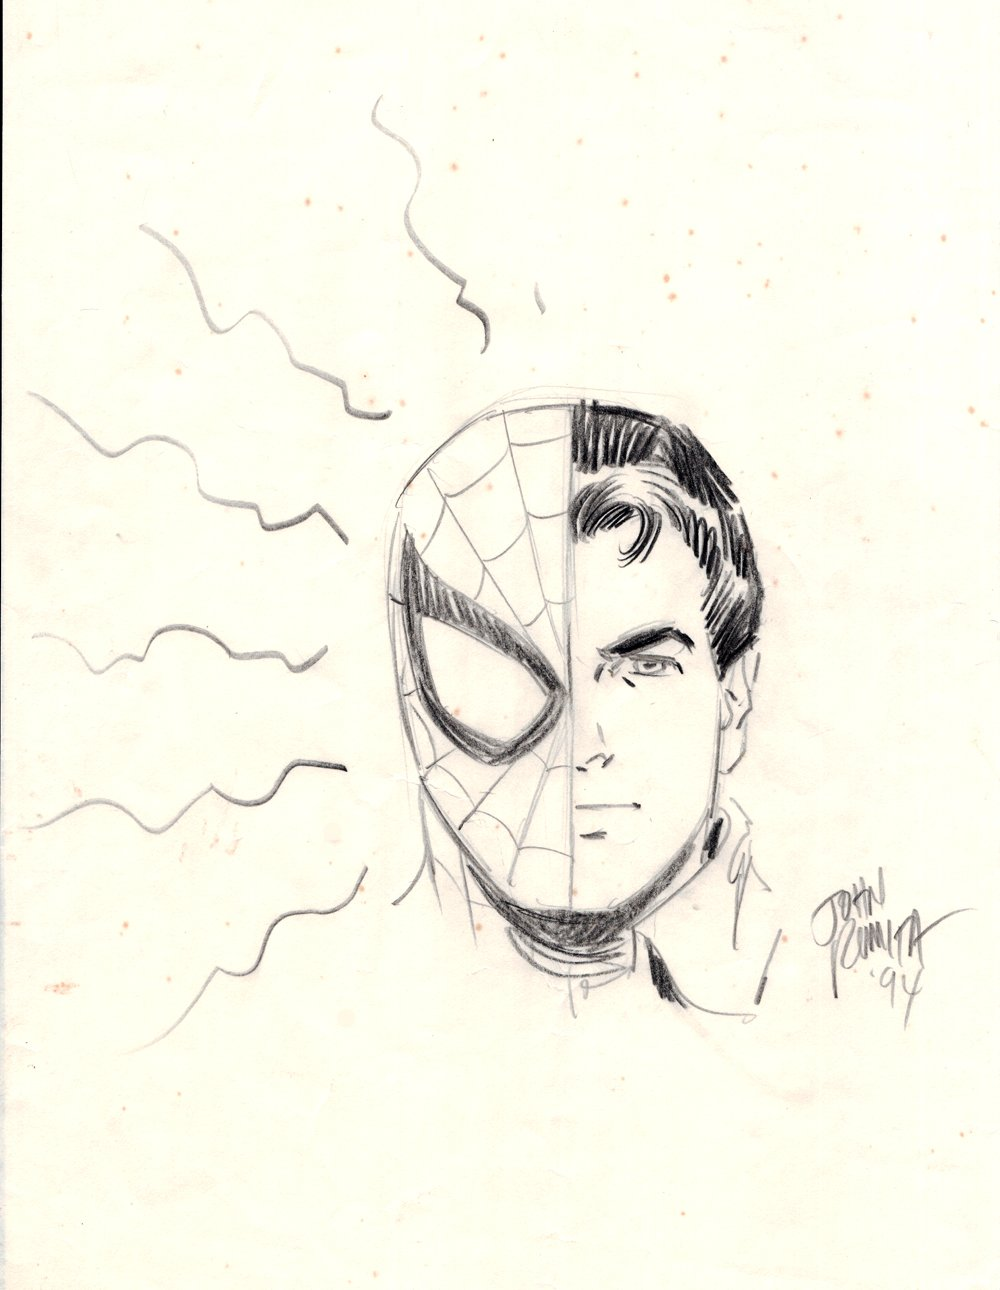 Spider-Man / Peter Parker Pinup (SOLD LIVE ON 'DUELING DEALERS OF COMIC ART' EPISODE #7 PODCAST ON 3-10-2021 (RE-WATCH OUR LIVE ART SELLING PODCAST HERE!)